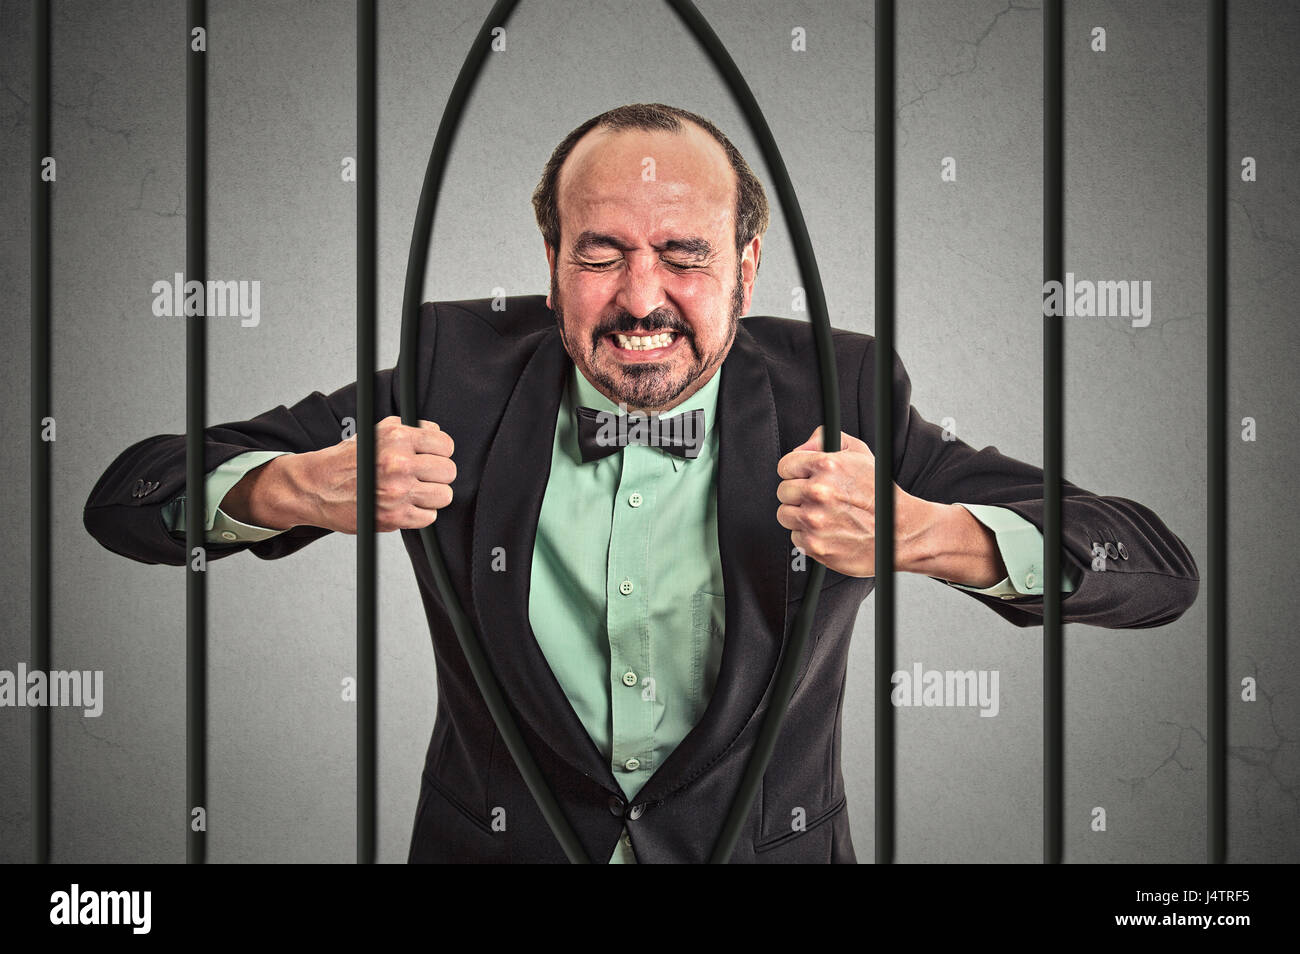 Furious strong middle aged businessman bending bars of his prison cell grey wall background. Life limitations, law - Stock Image